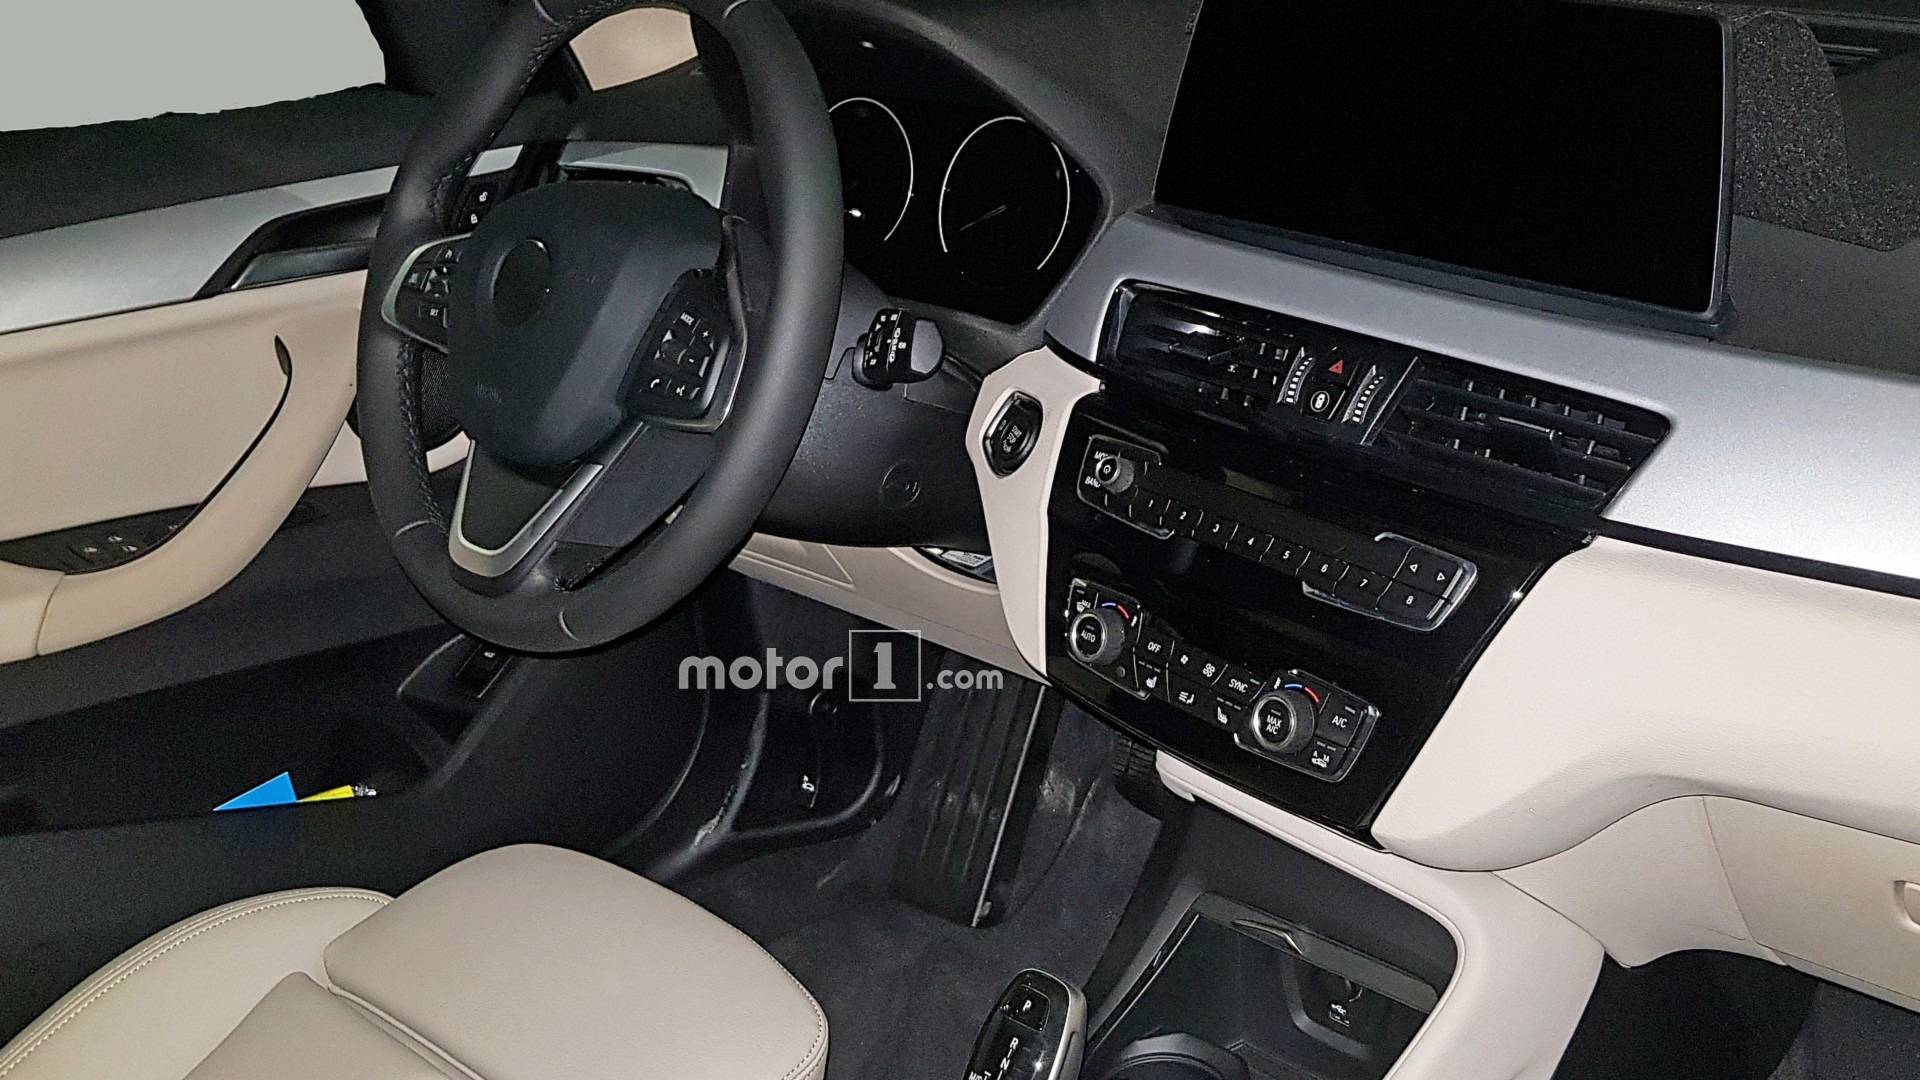 Have A Look Inside The 2020 Bmw X1 Facelift